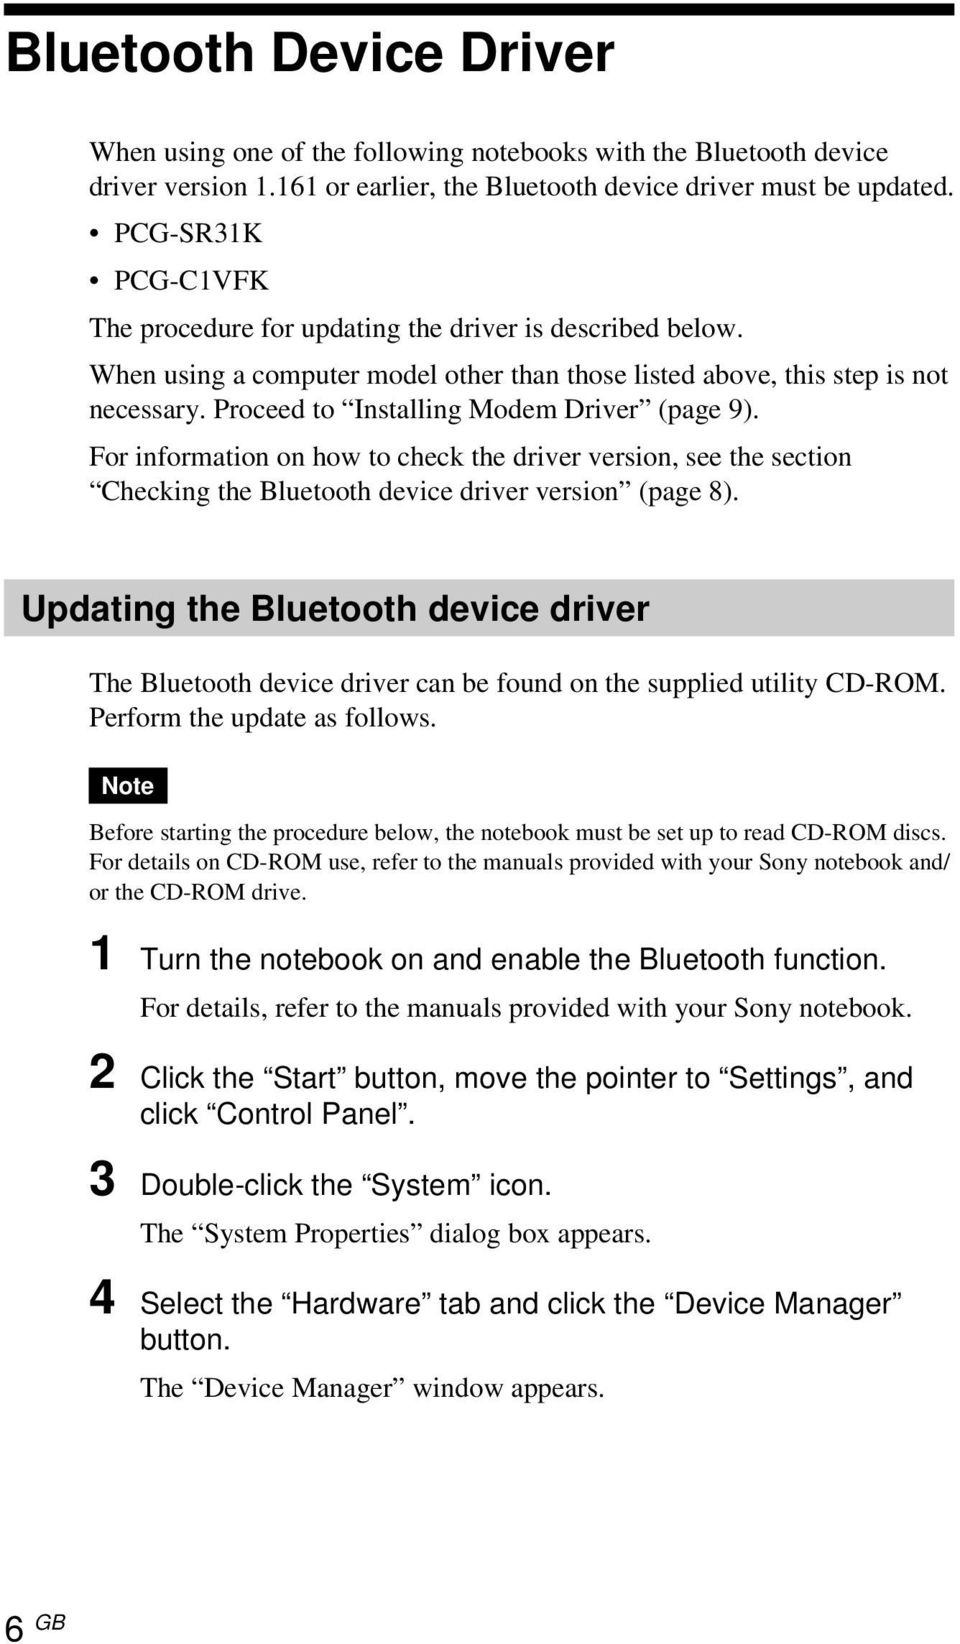 Proceed to Installing Modem Driver (page 9). For information on how to check the driver version, see the section Checking the Bluetooth device driver version (page 8).